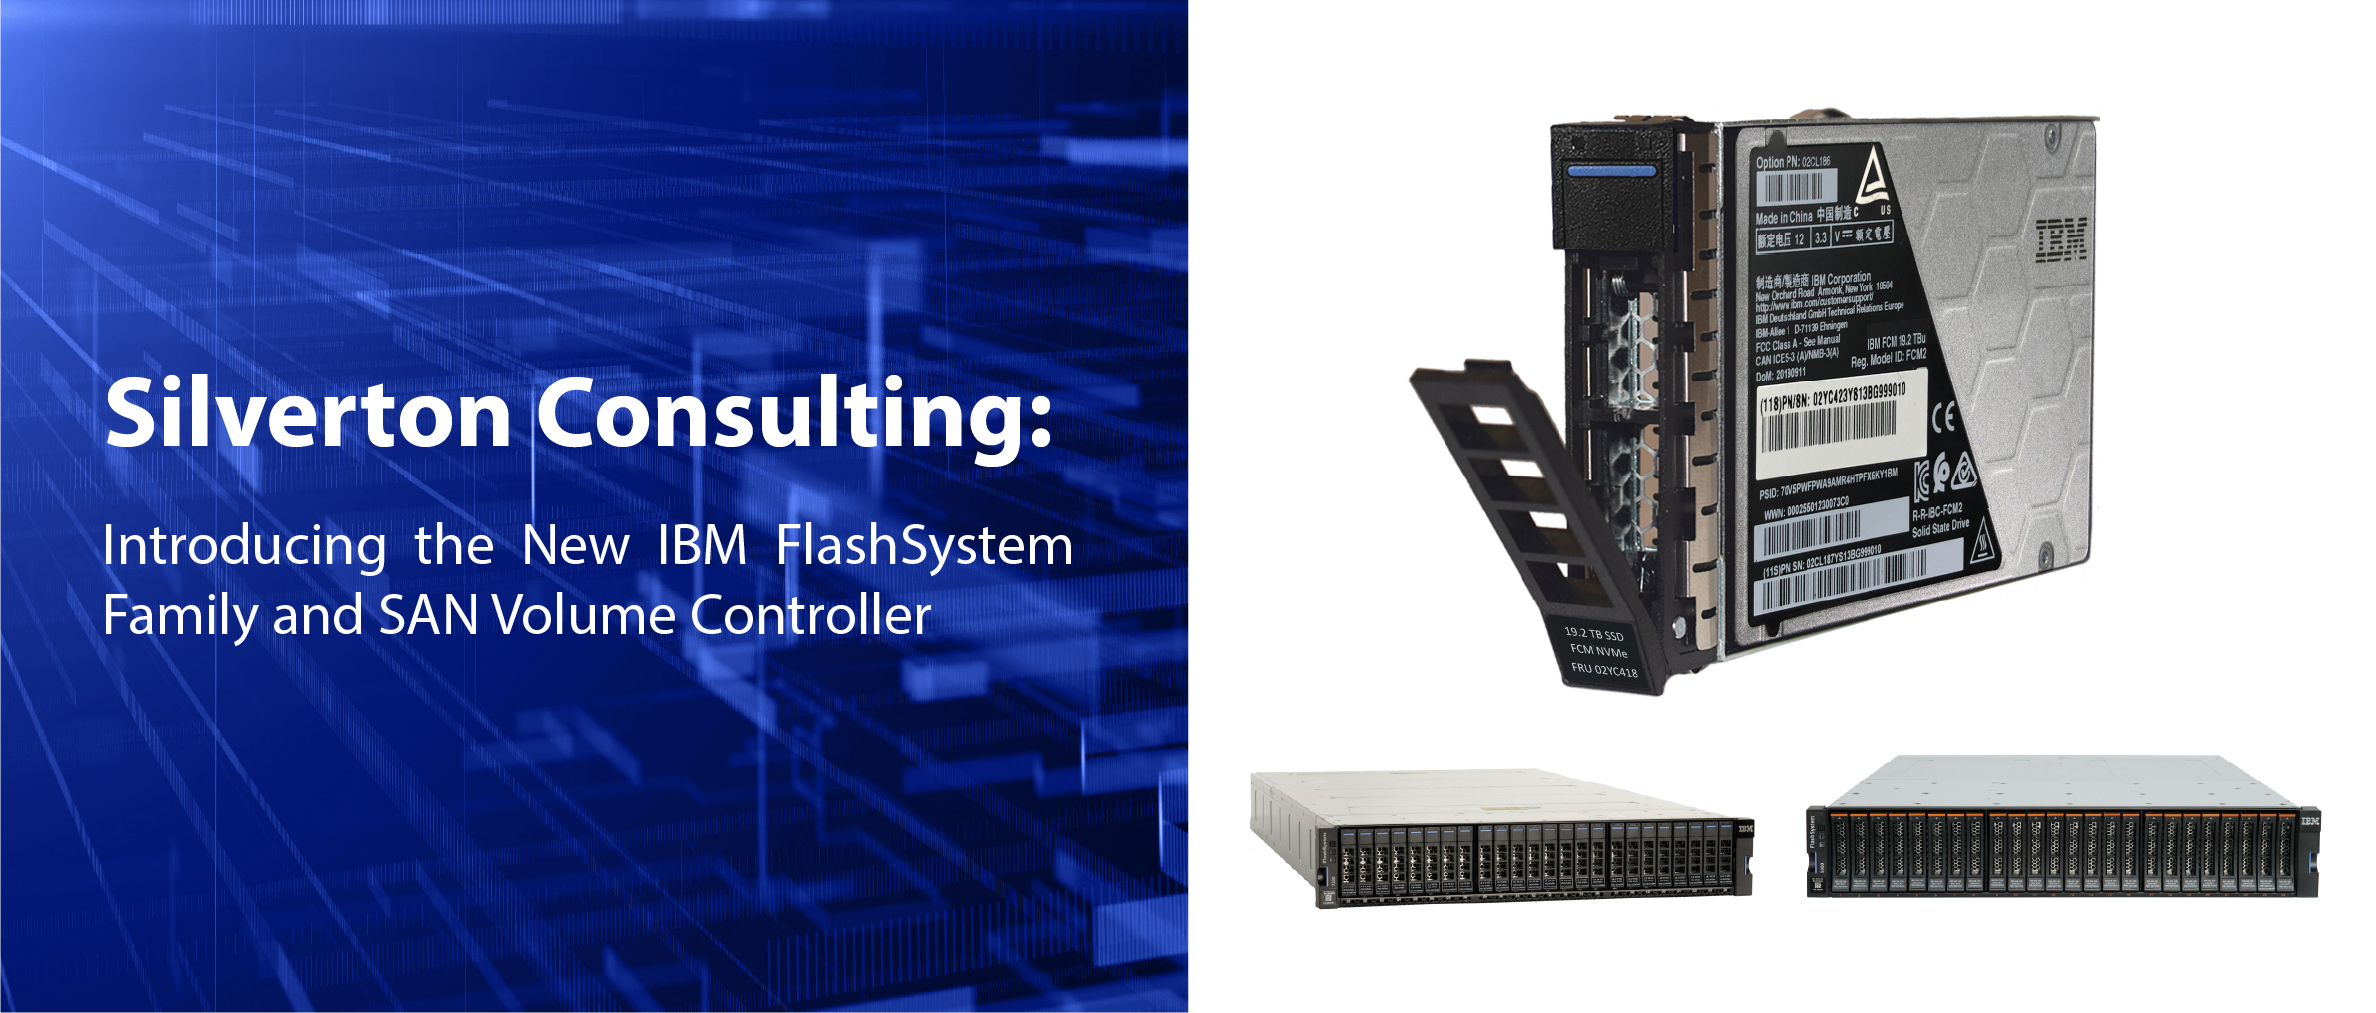 Q3 Silverton Consulting: Introducing the New IBM FlashSystem Family and SAN Volume Controller .pdf